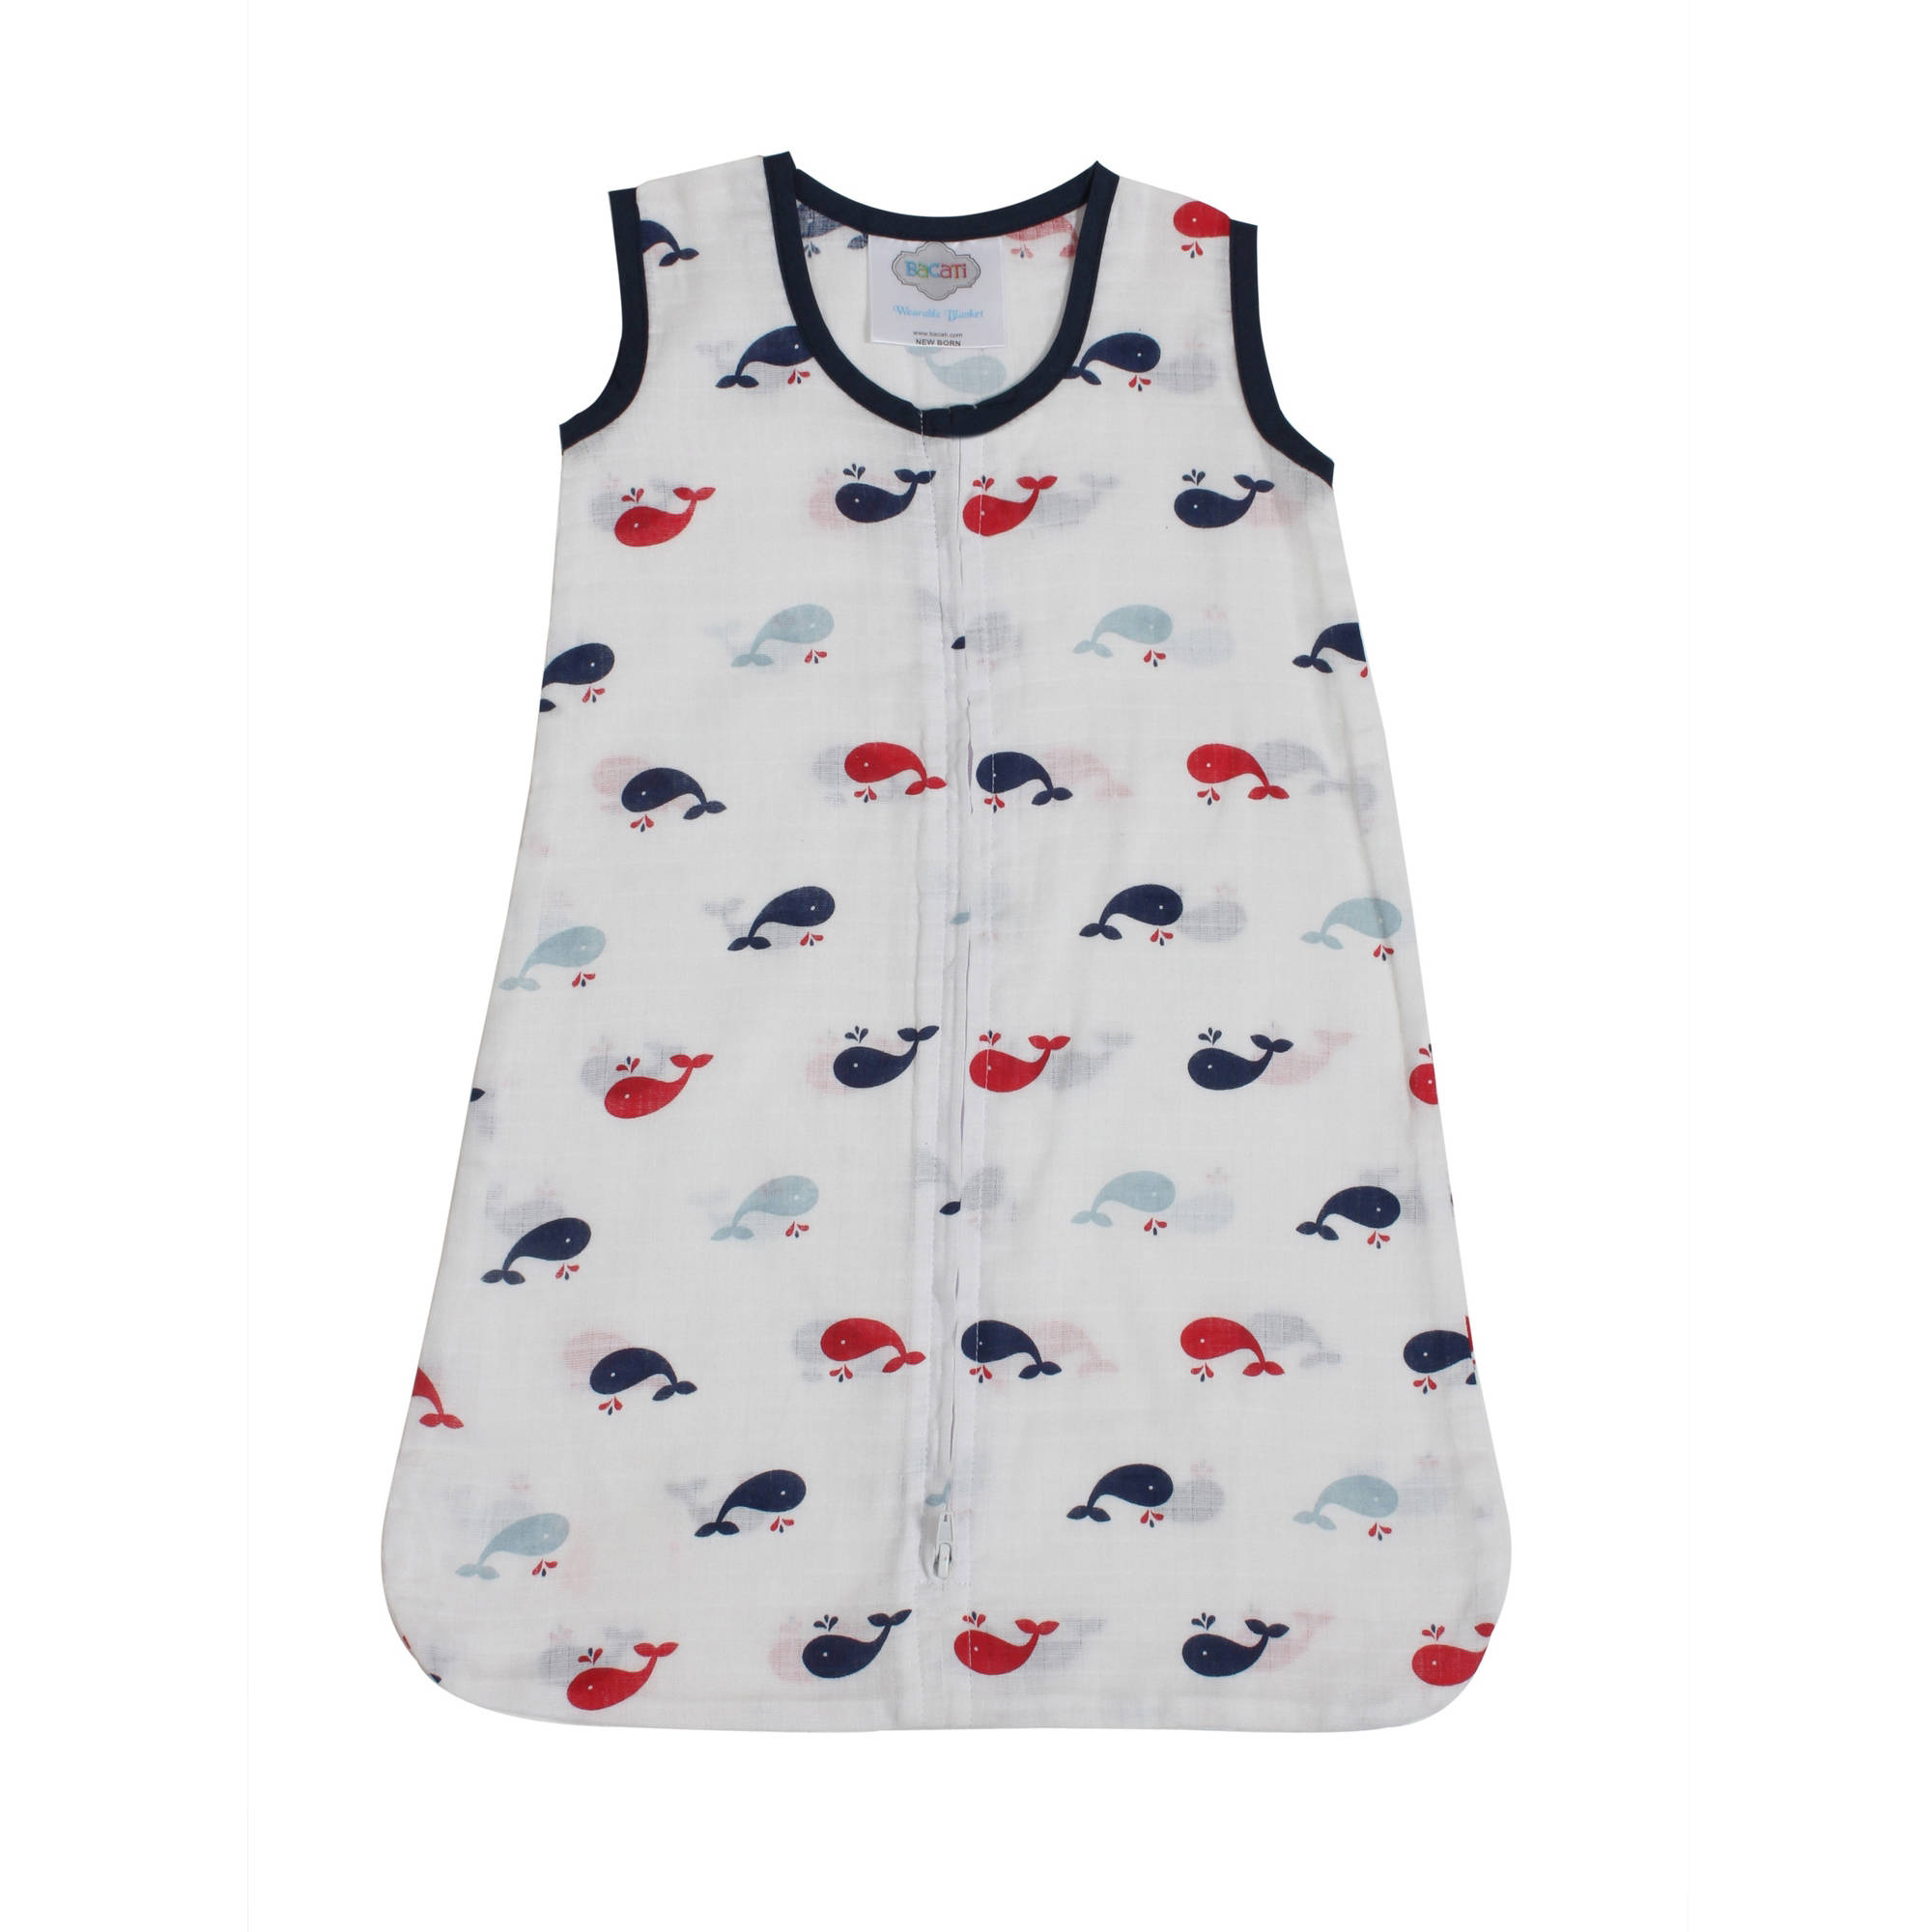 Bacati - Little Sailor Whales Boys 100% Cotton breathable Muslin Sleep Sack (Choose Your Size)